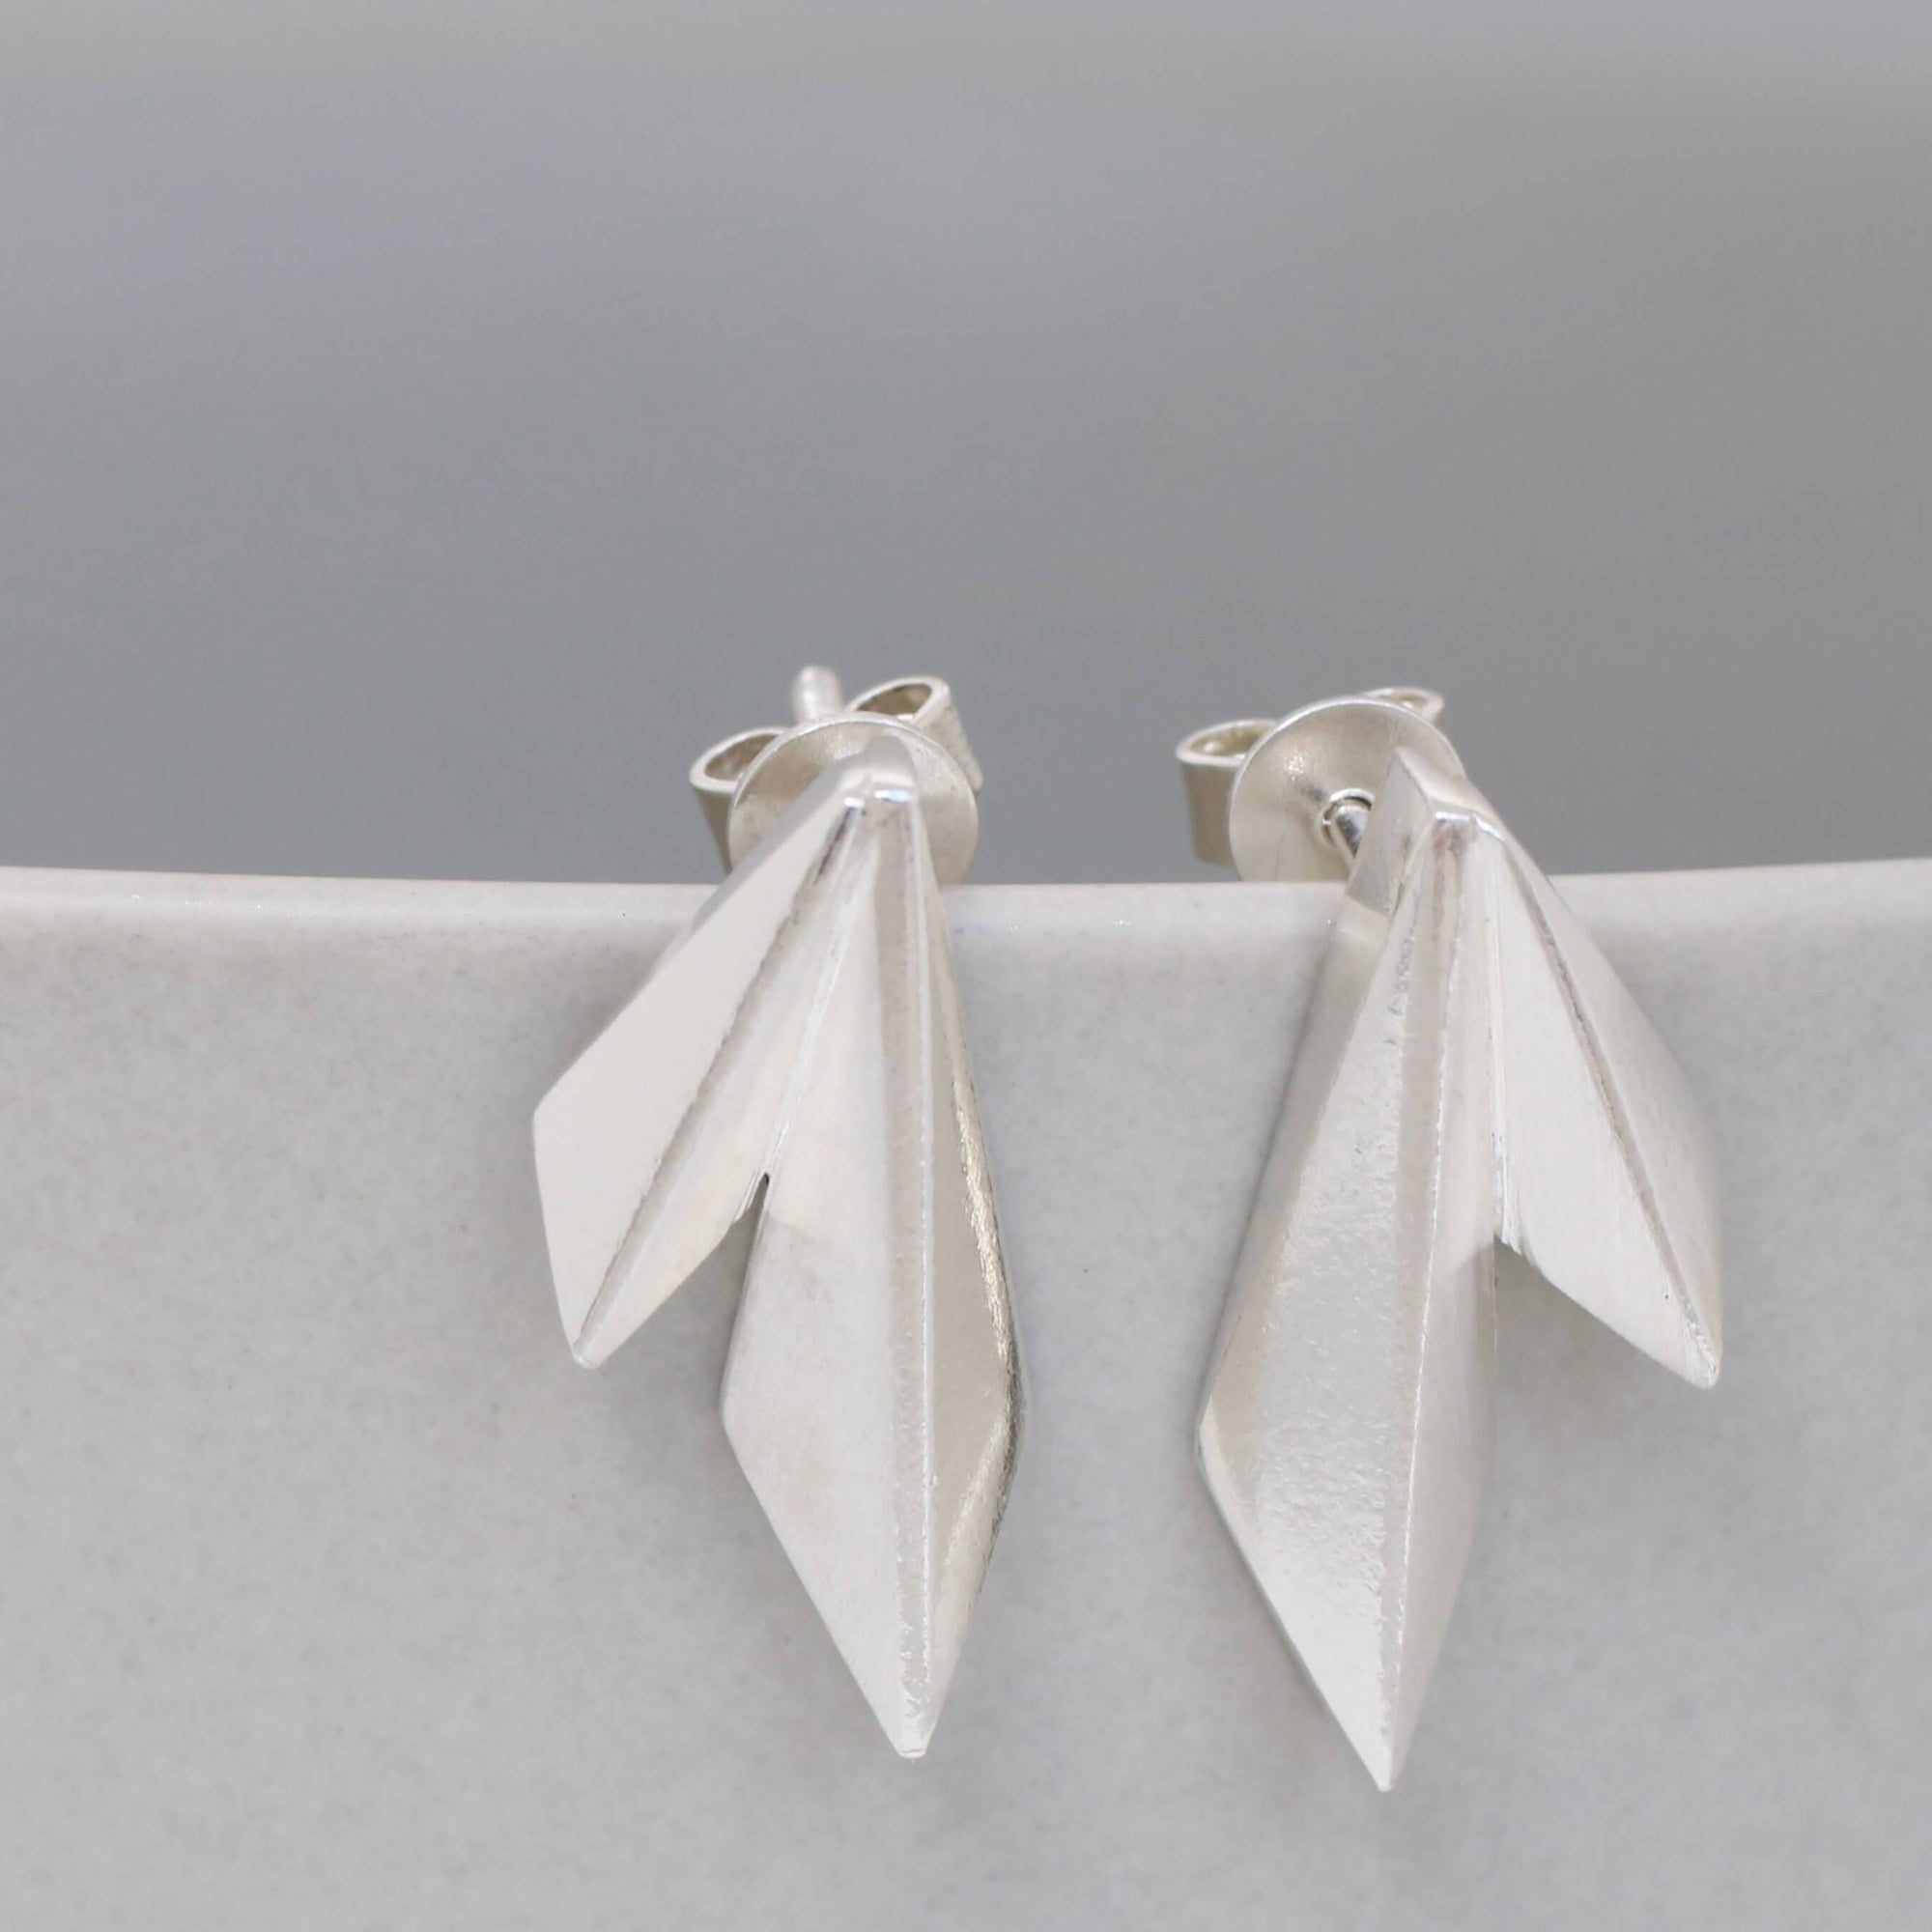 Deco Double Kite Stud Earrings